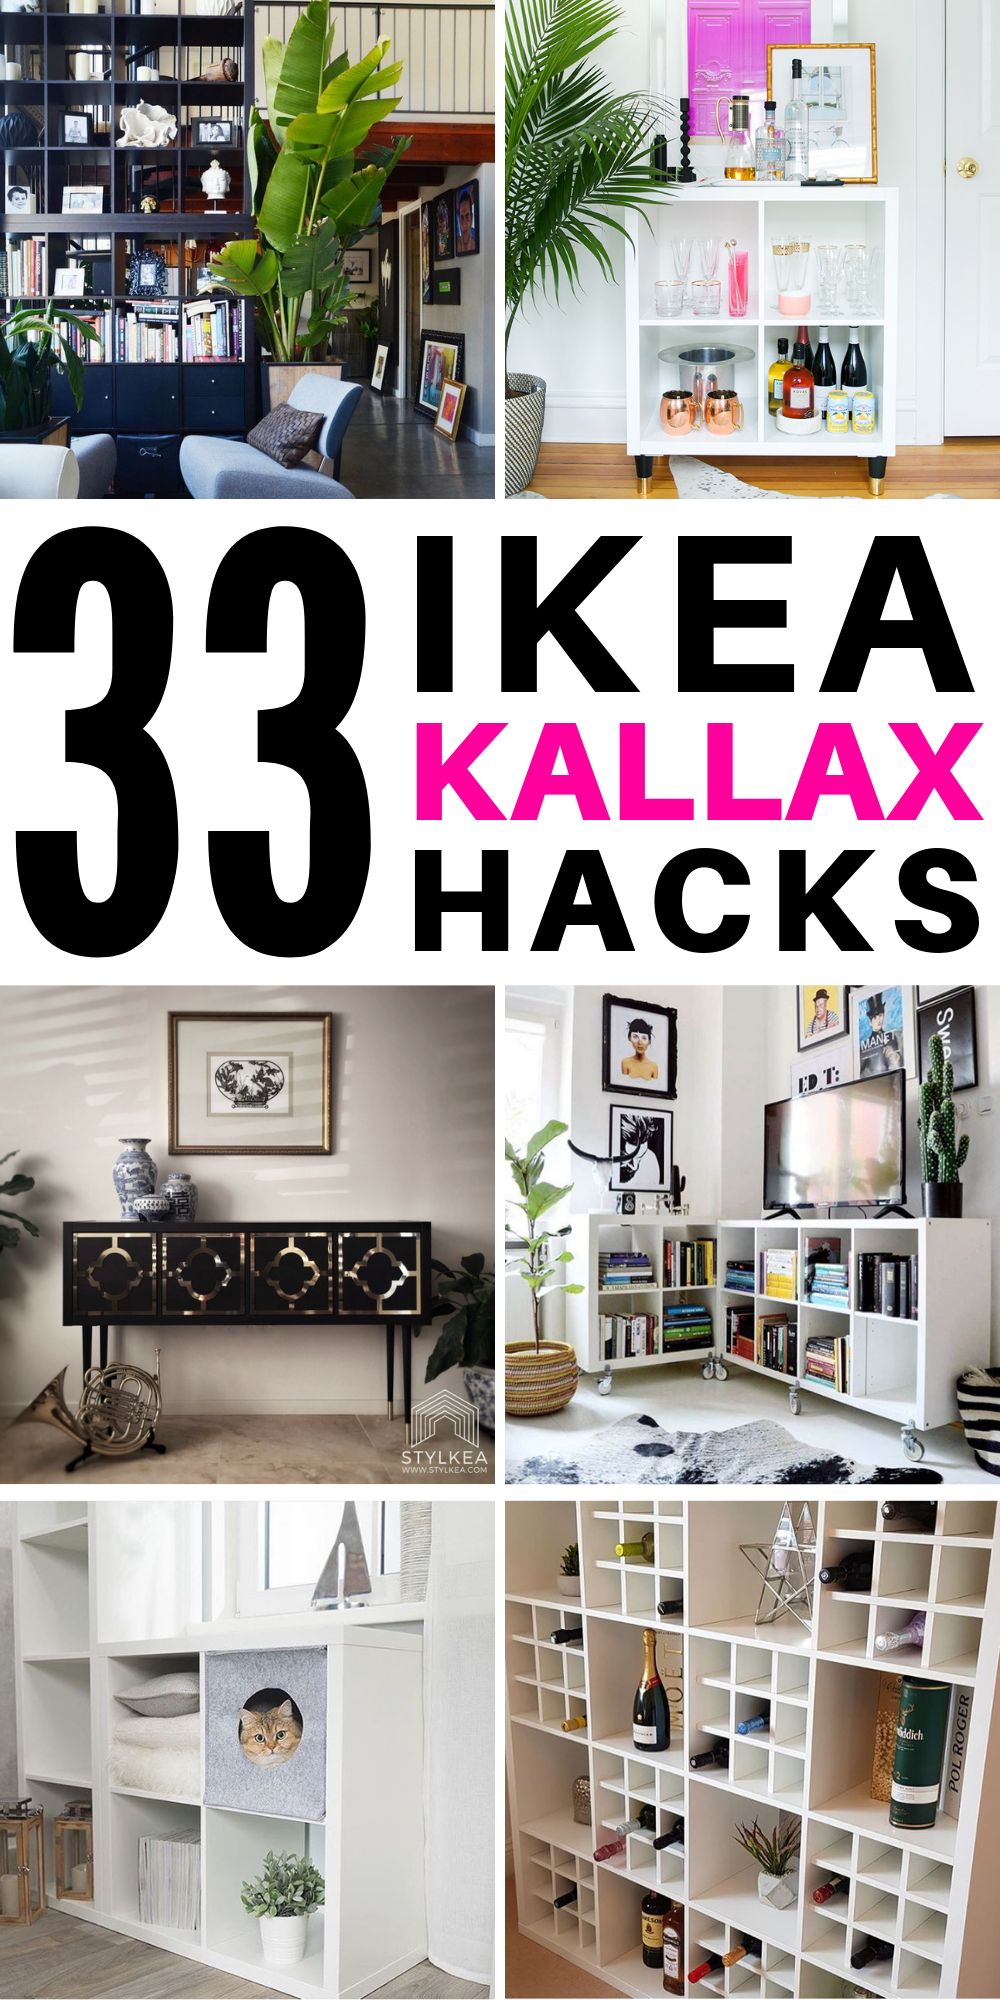 33 Stunning Ikea Kallax Hack Ideas you Need to See #drinks